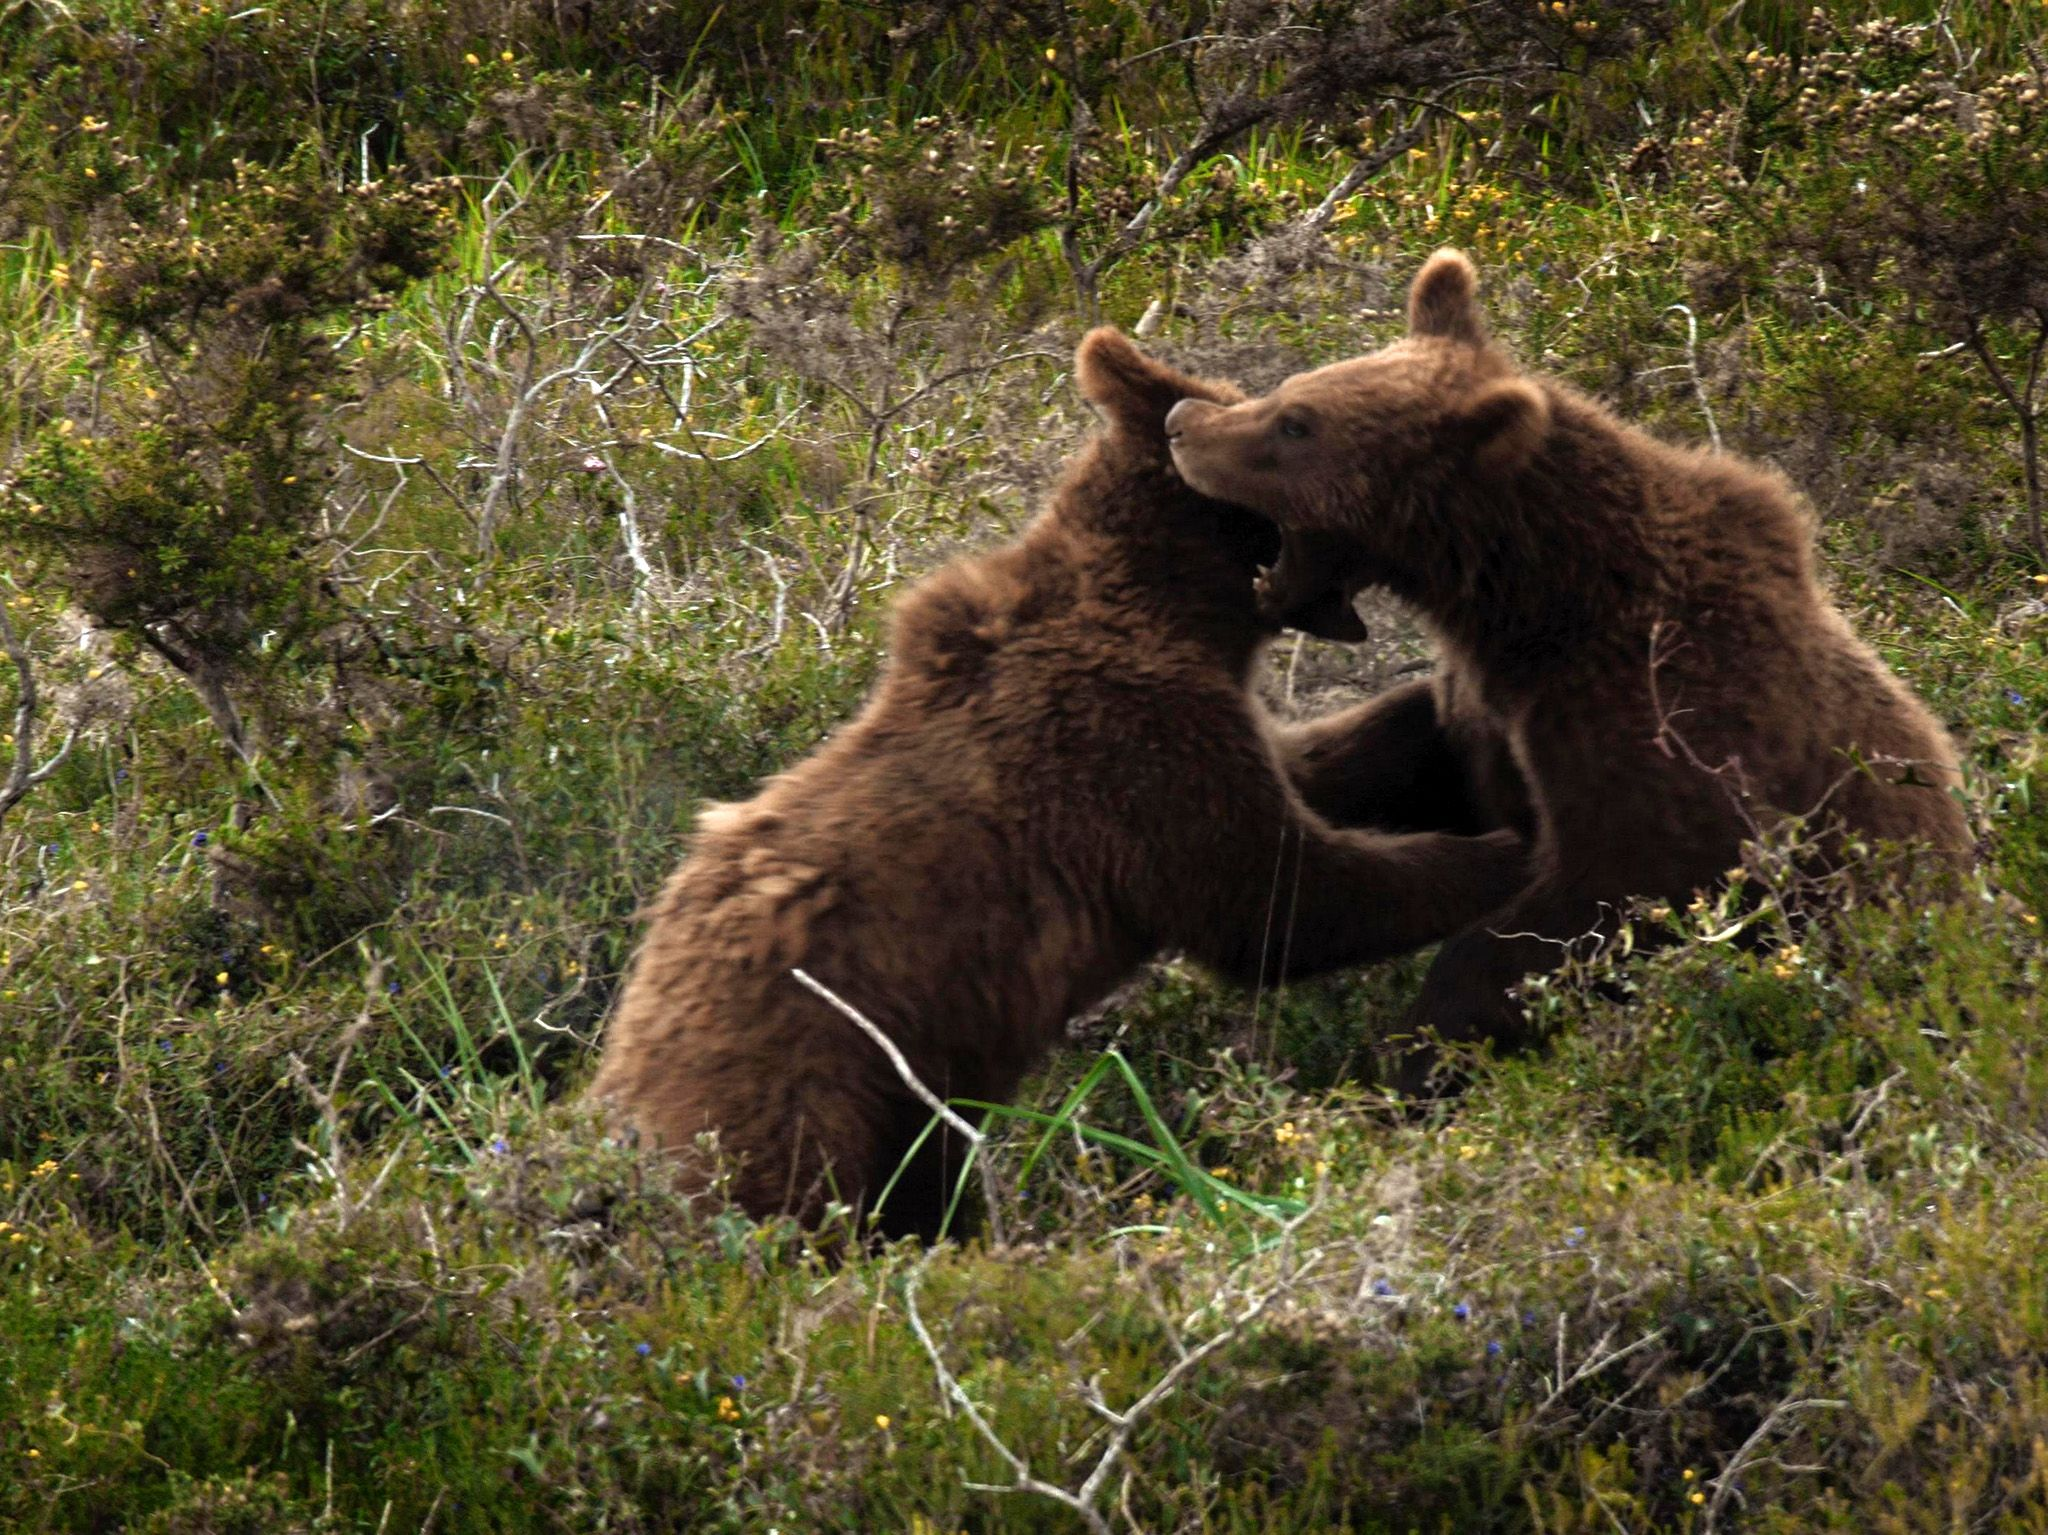 Two brown bears fighting. This image is from Wild Hunters. [Photo of the day - May 2019]